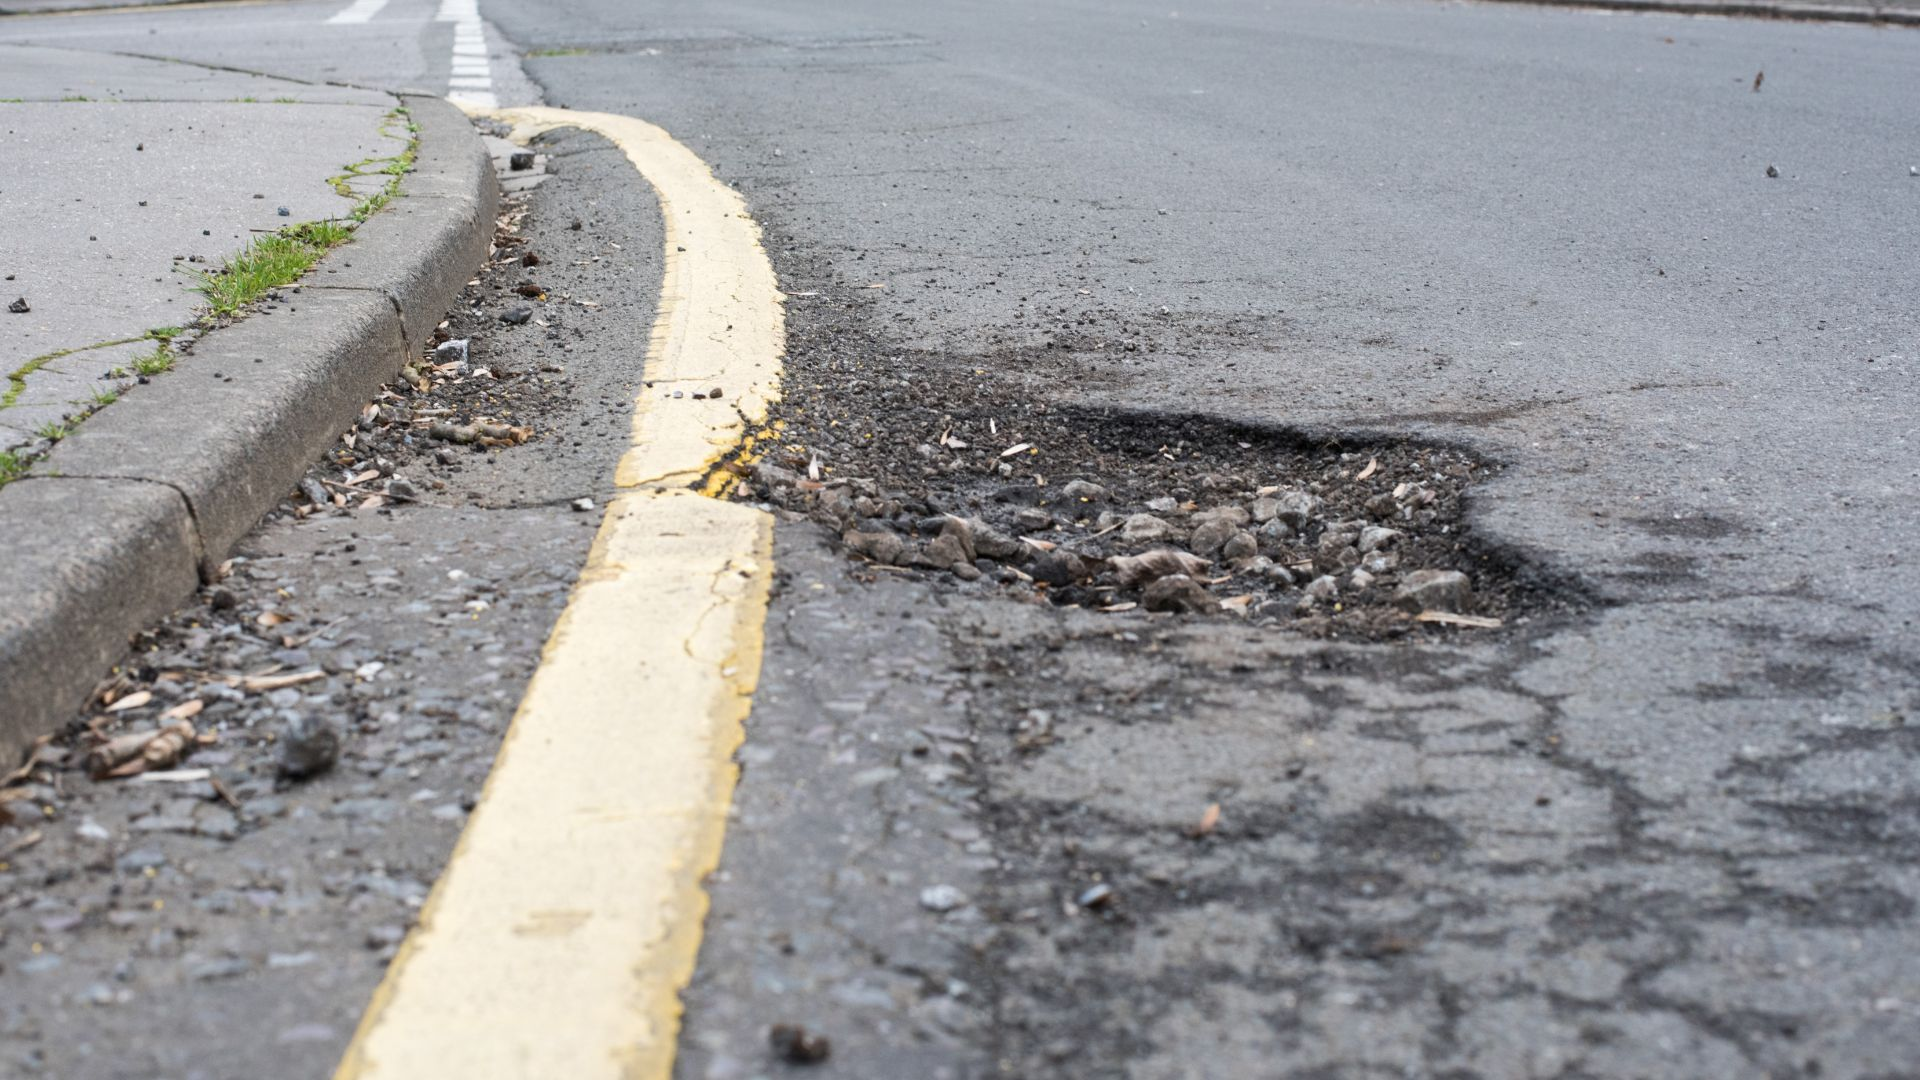 Potholes and speed bumps damage one in four cars